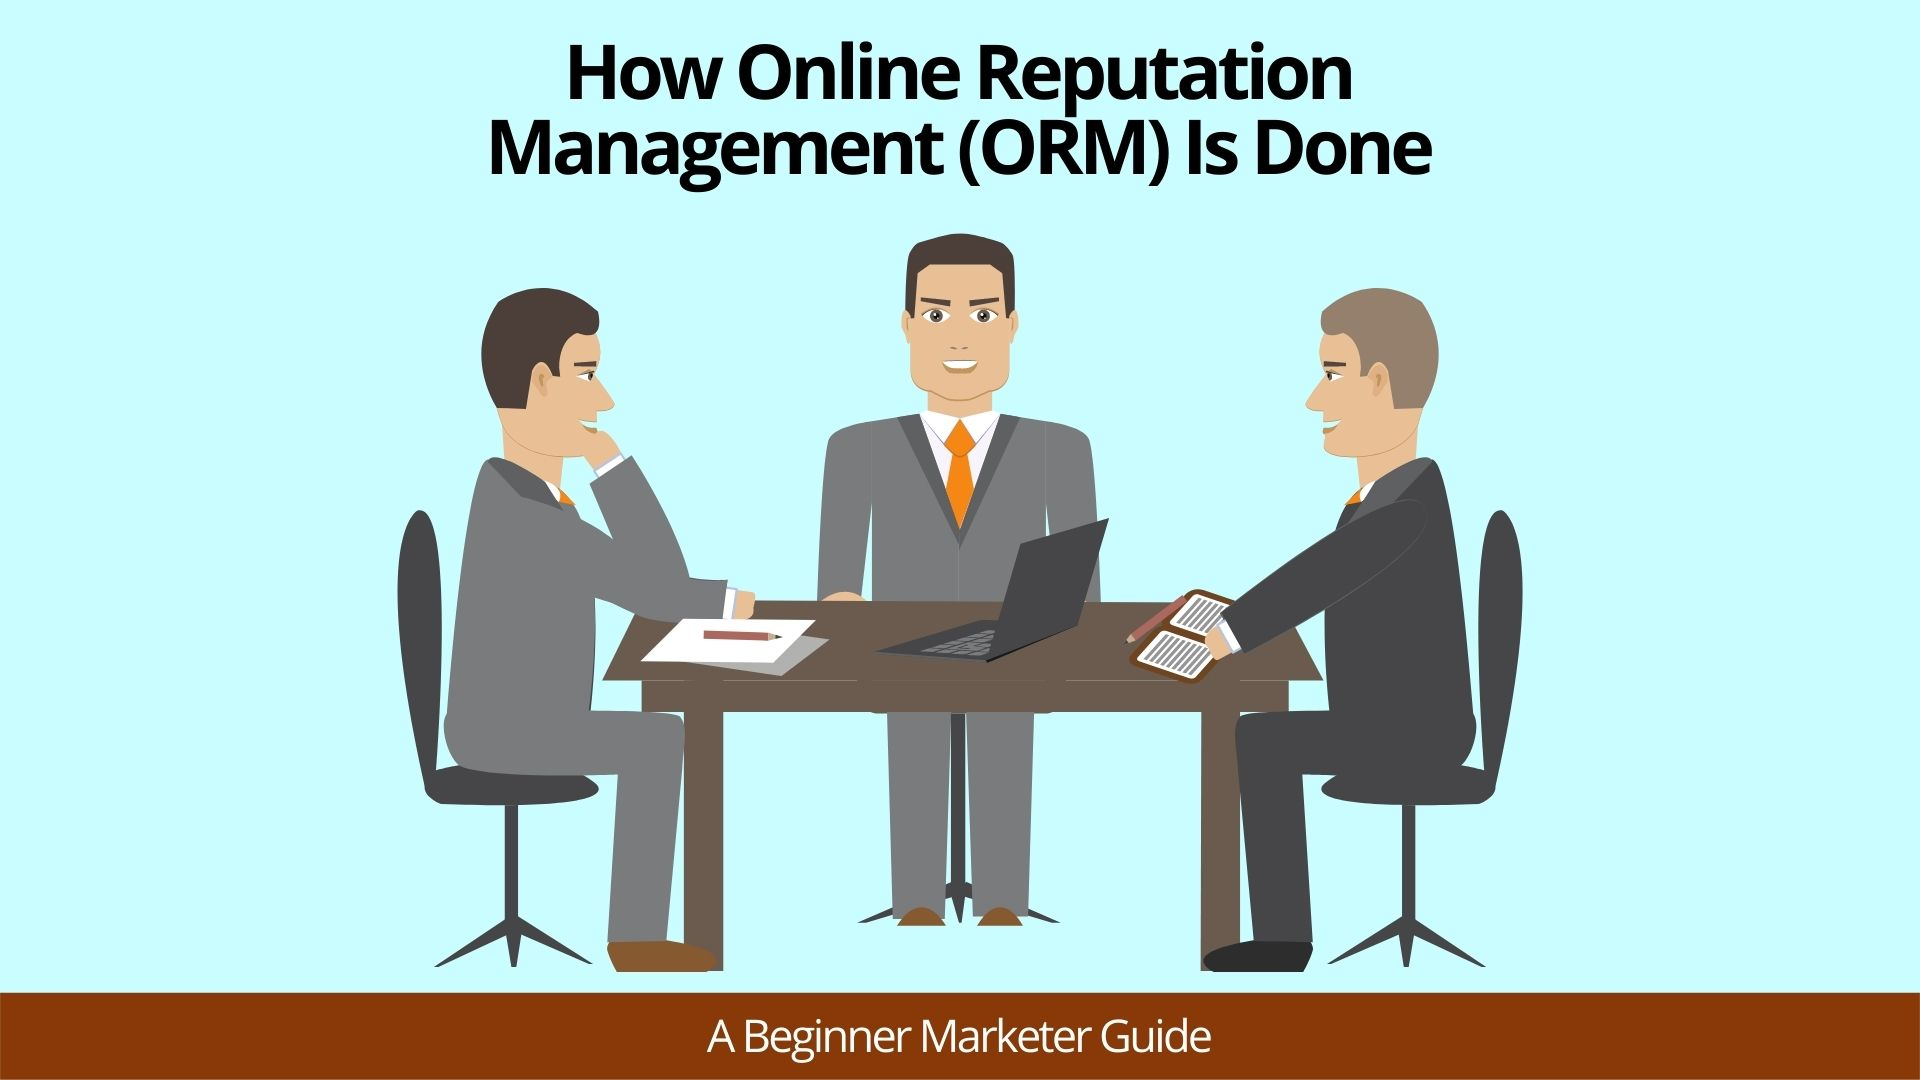 What Is Online Reputation Management (ORM)?